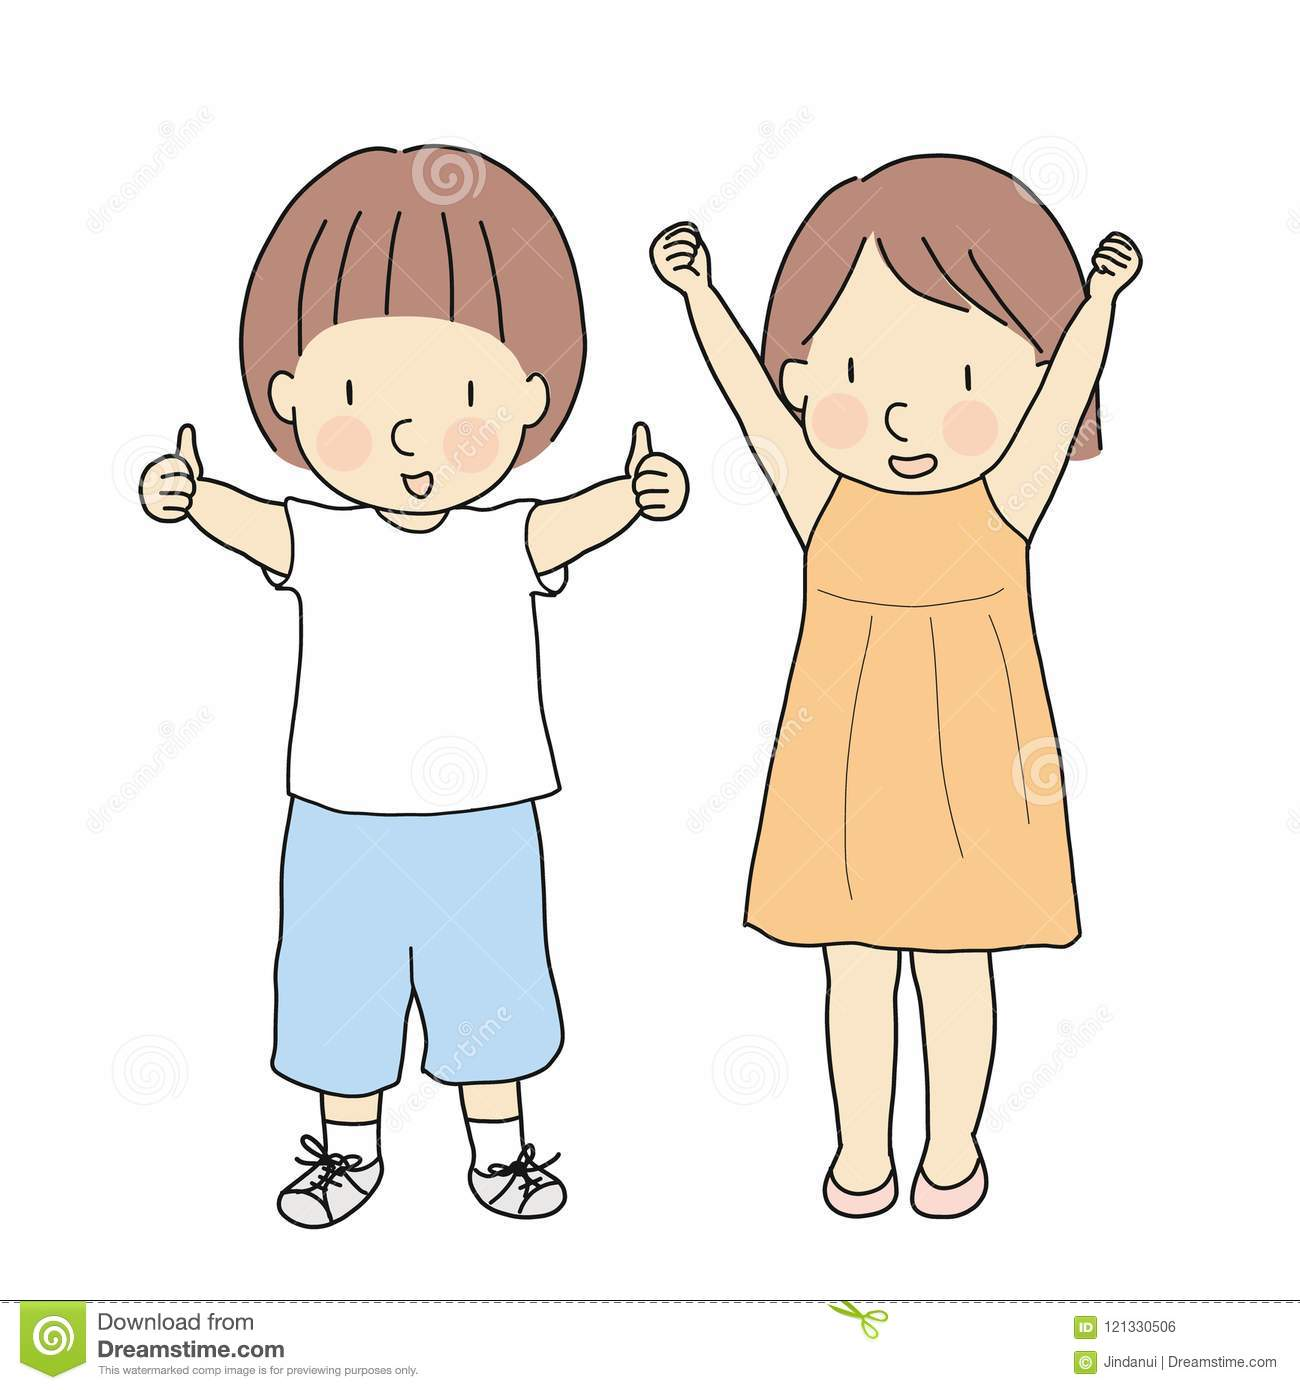 Vector illustration of two kids, boy with thumbs up and girl with raised arms & fits celebrating success. Sign and gesturing